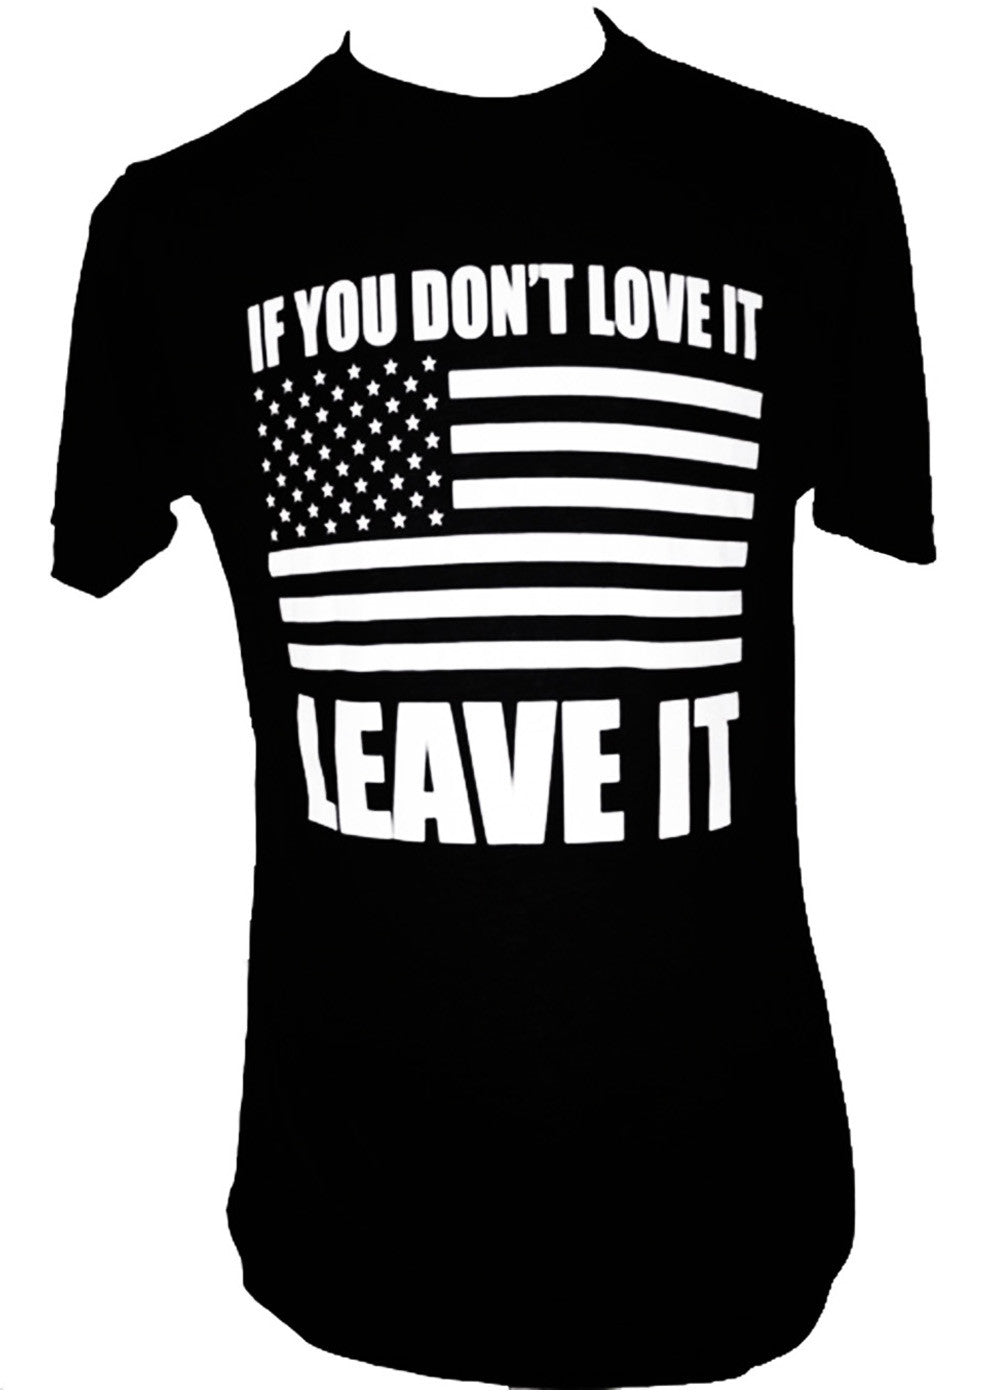 IF YOU DON'T LOVE IT TEE - Trailsclothing.com